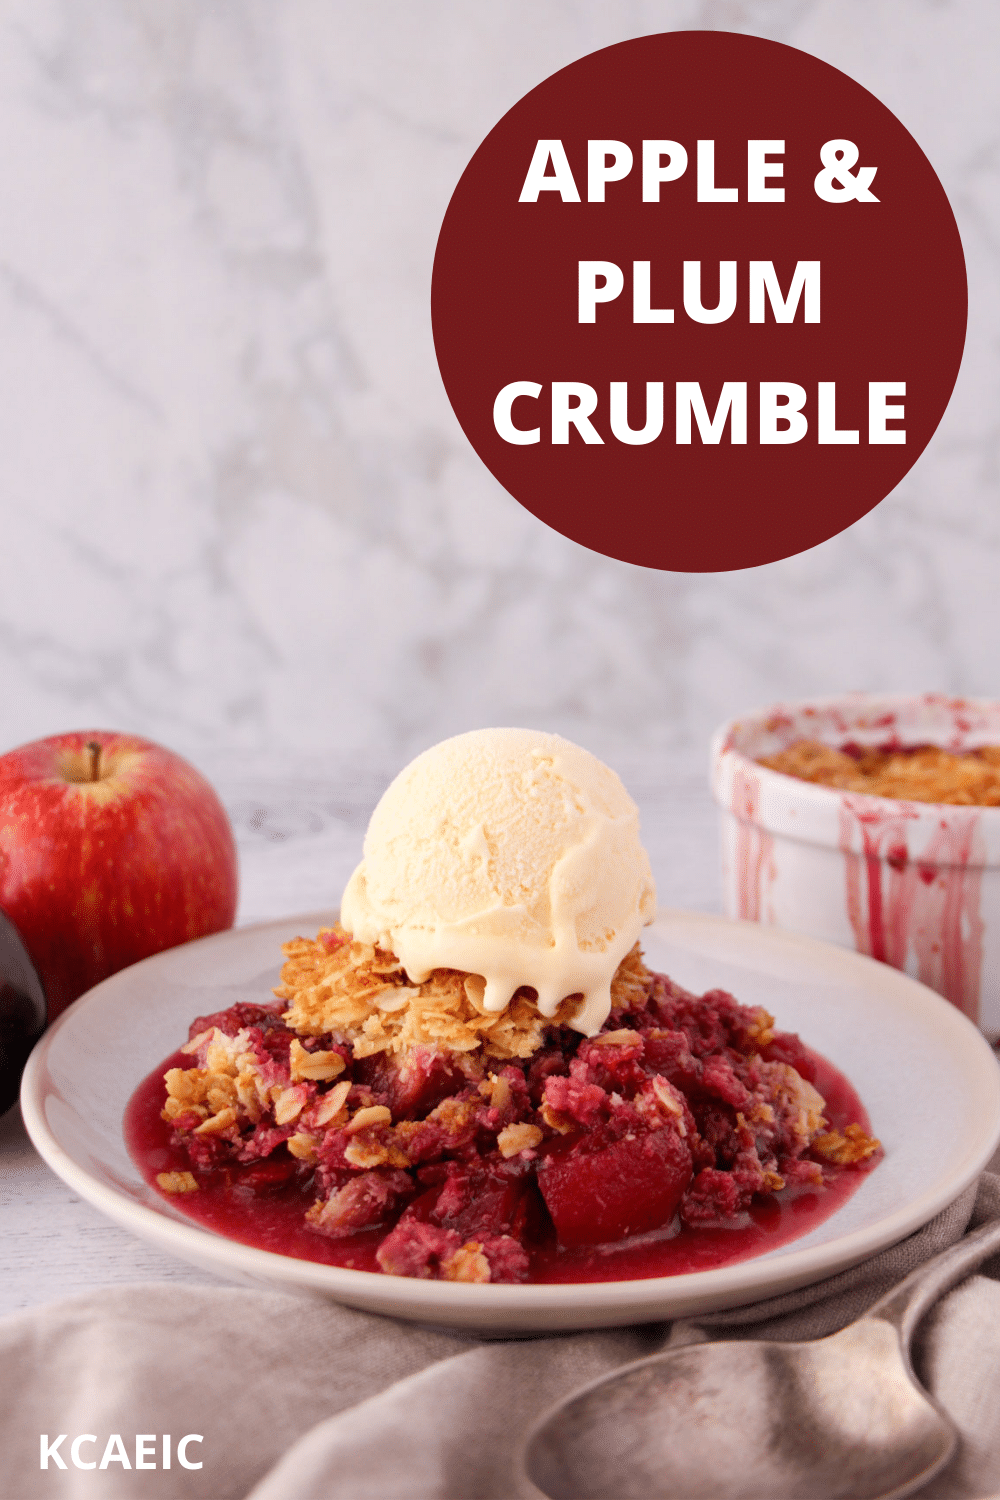 Apple and plum crumble on a plate with ice cream, with vintage serving spoon and ramakin and fresh fruit in the back ground and text overlay, apple and plum crumble and KCAEIC.